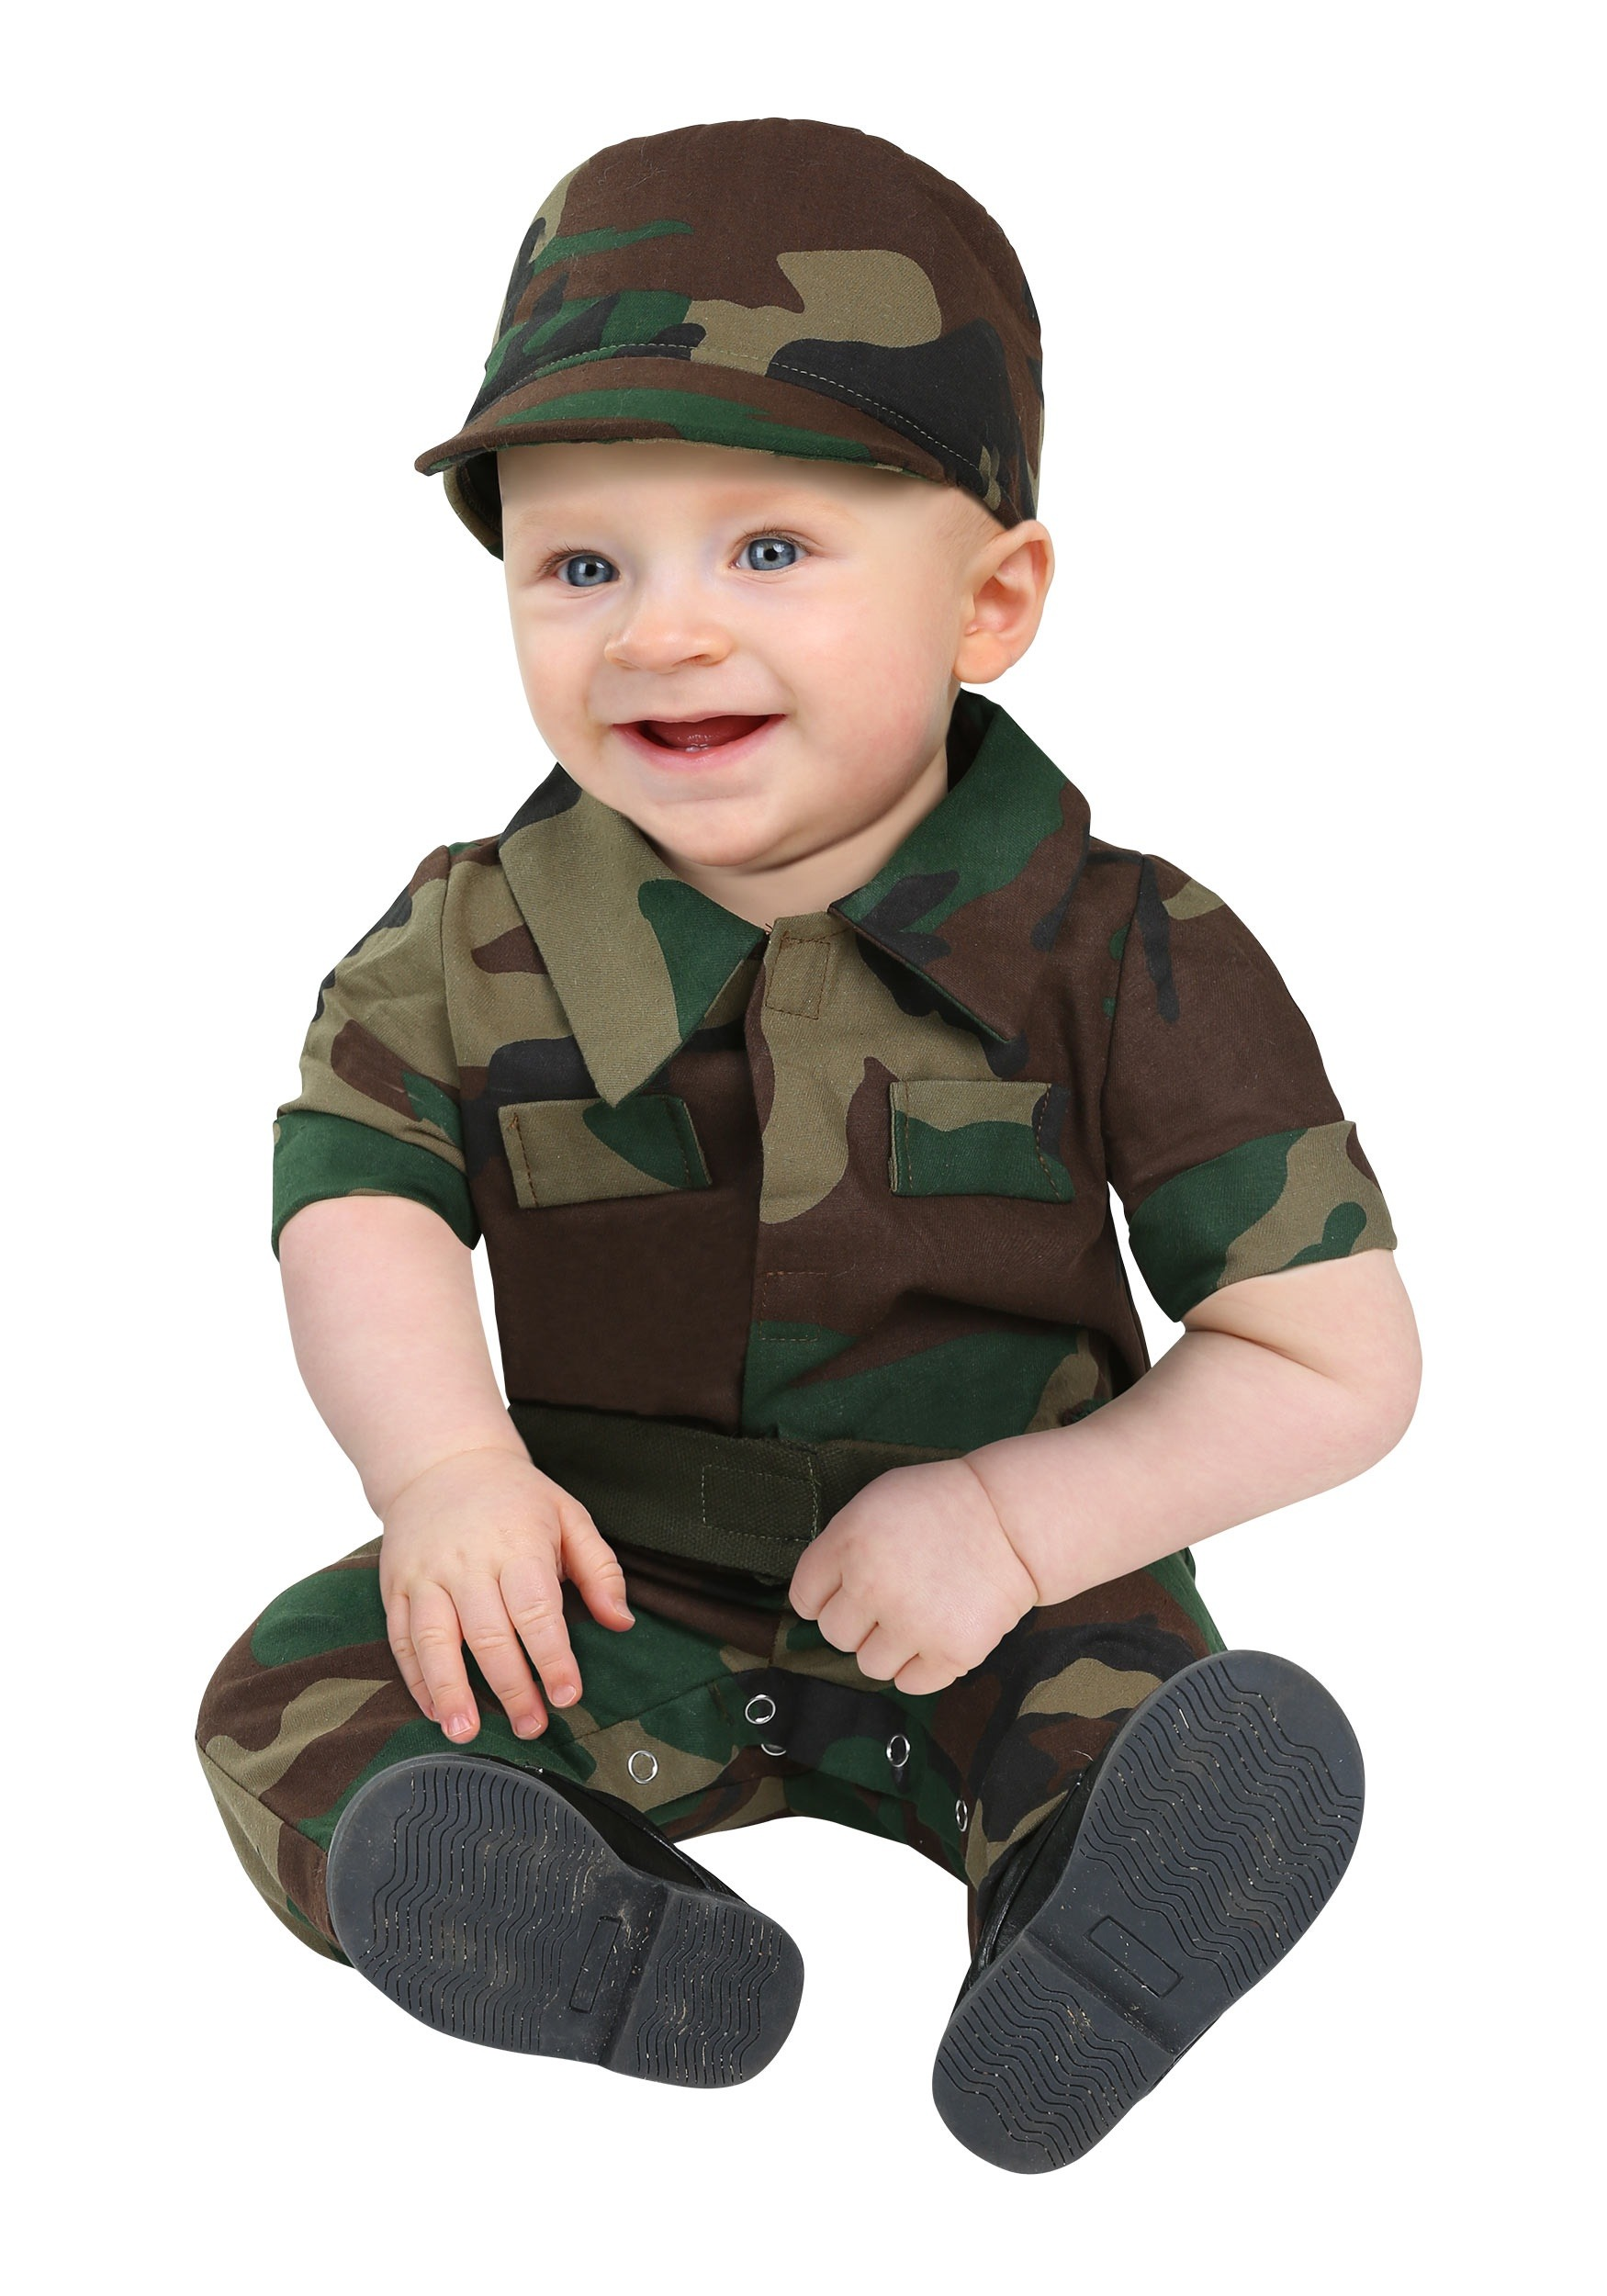 Infant Infantry Soldier  sc 1 st  Halloween Costumes & Infantry Soldier Costume for Infants